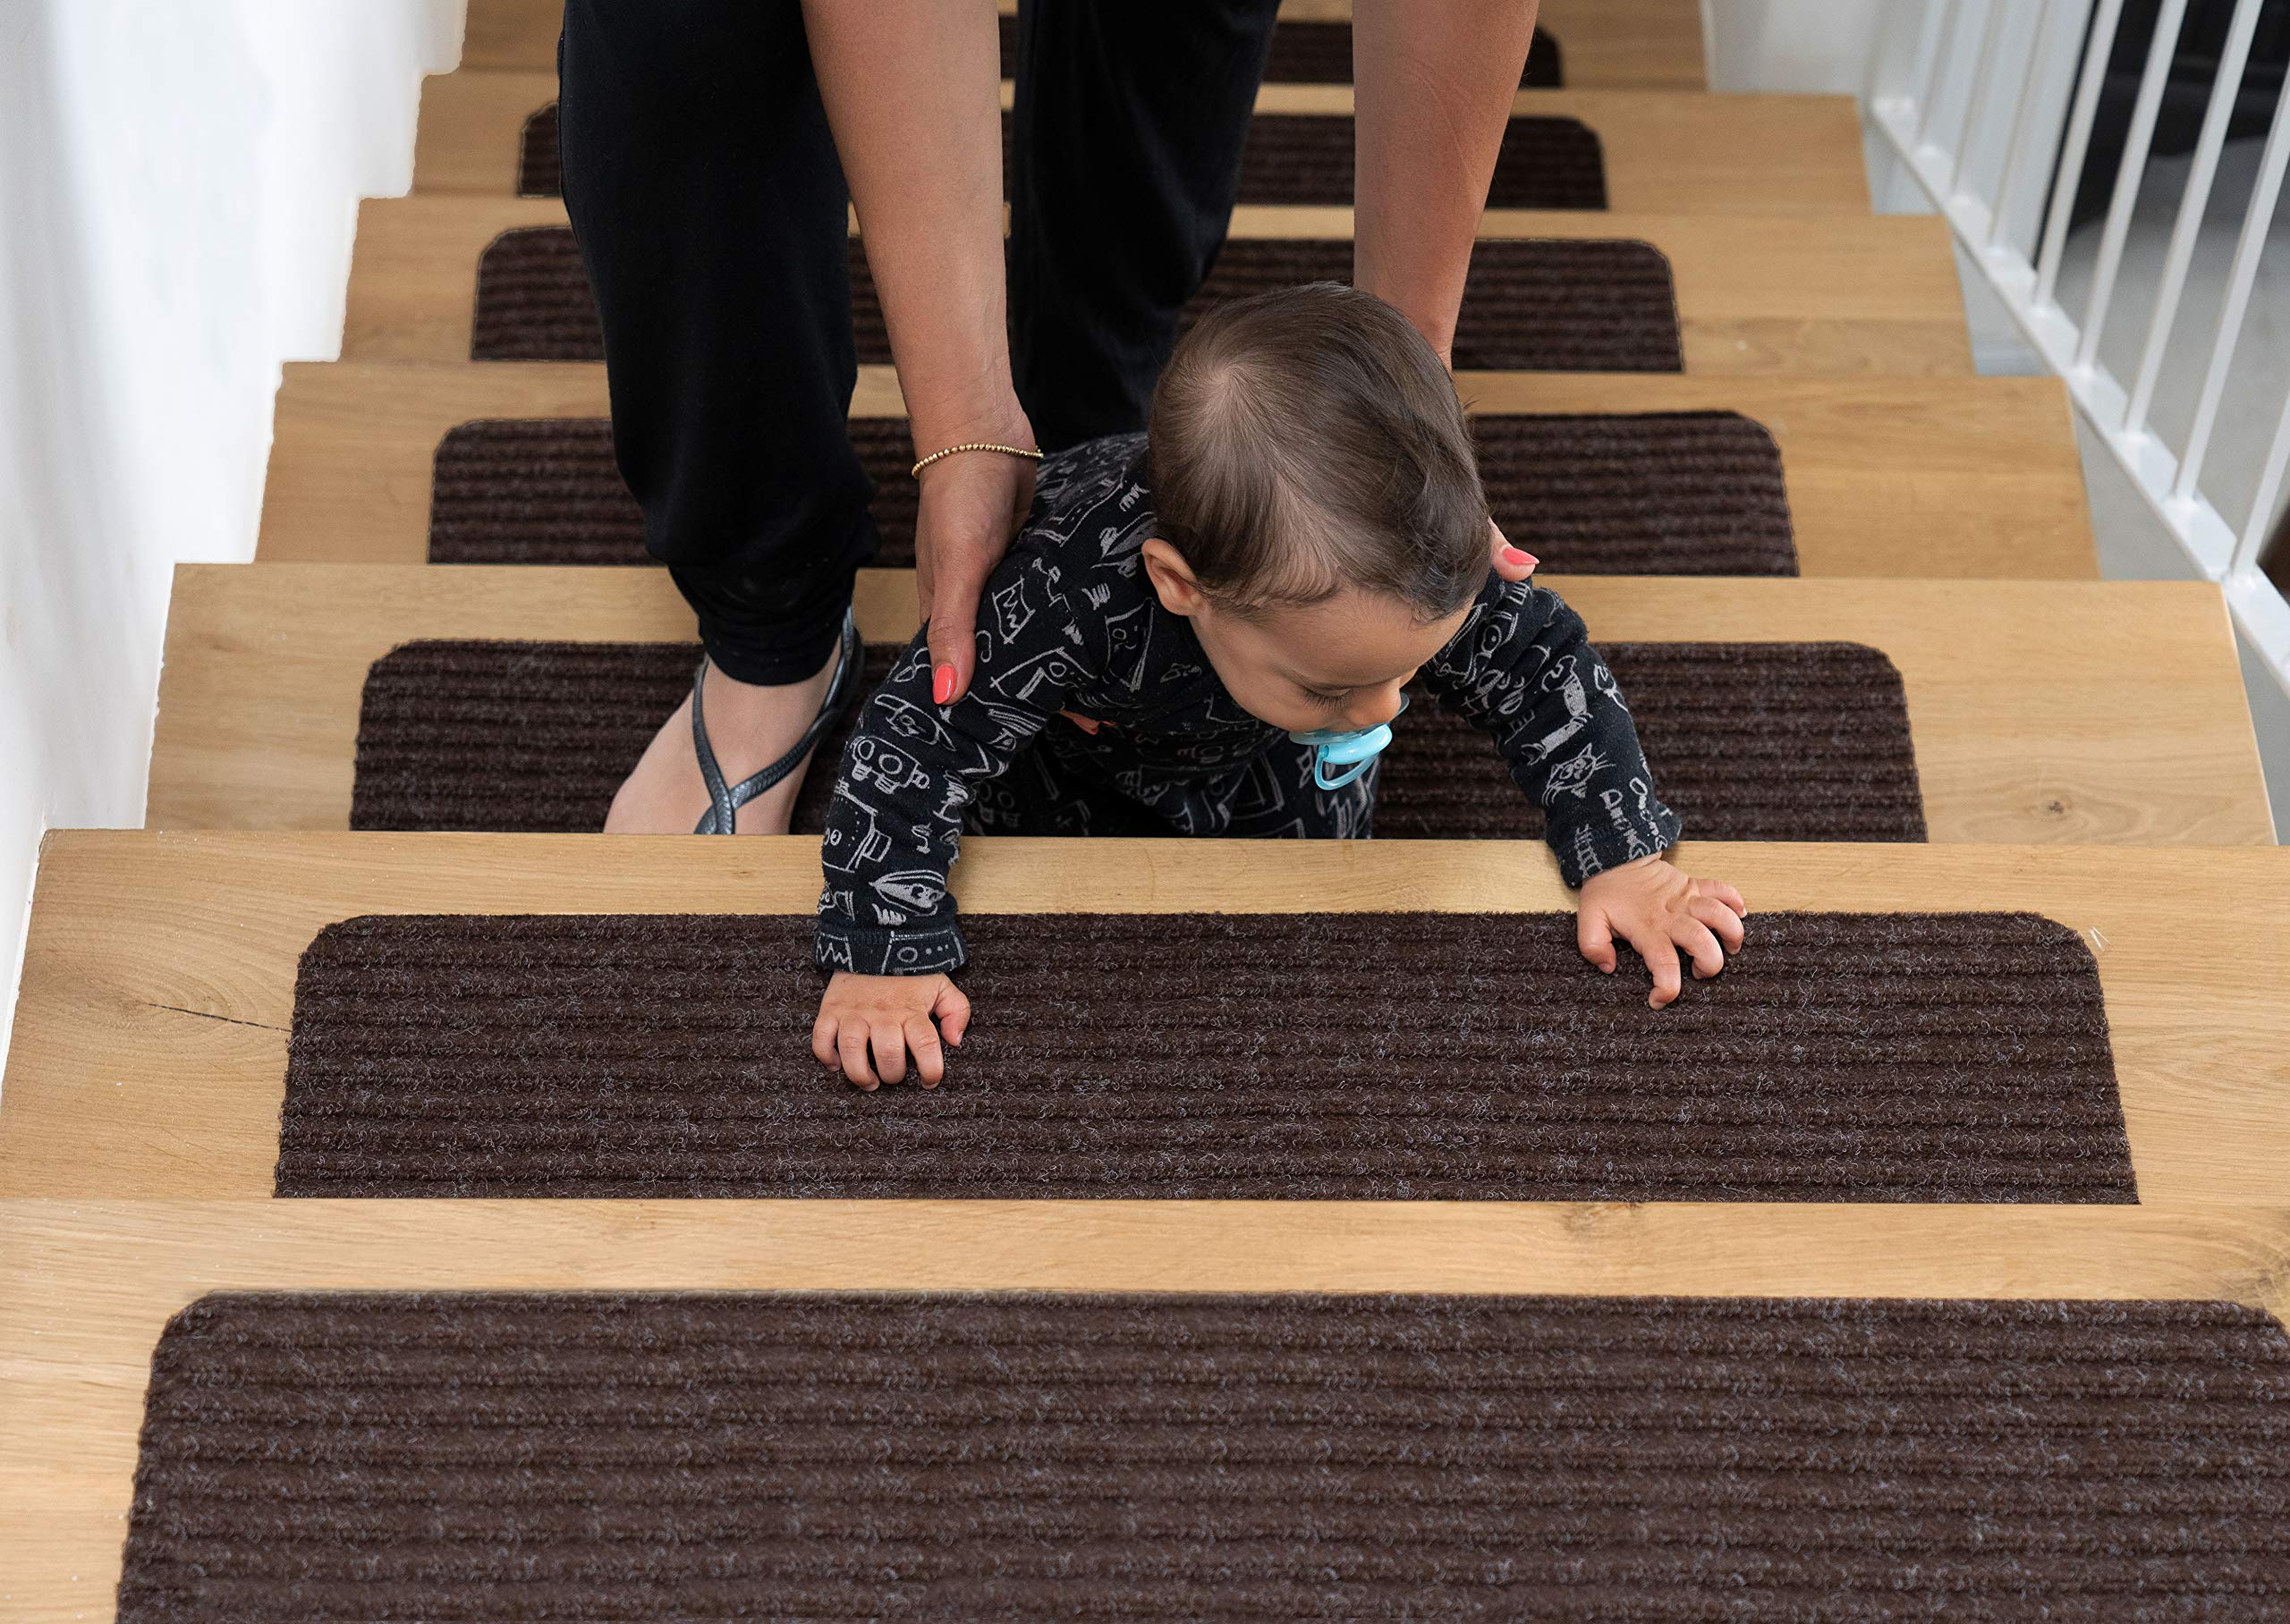 EdenProducts Patent Pending Non Slip Carpet Stair Treads, Set of 15, Rug Non Skid Runner for Grip and Beauty. Safety Slip Resistant for Kids, Elders, and Dogs. 8'' X 30'', Brown, Pre Applied Adhesive by EdenProducts